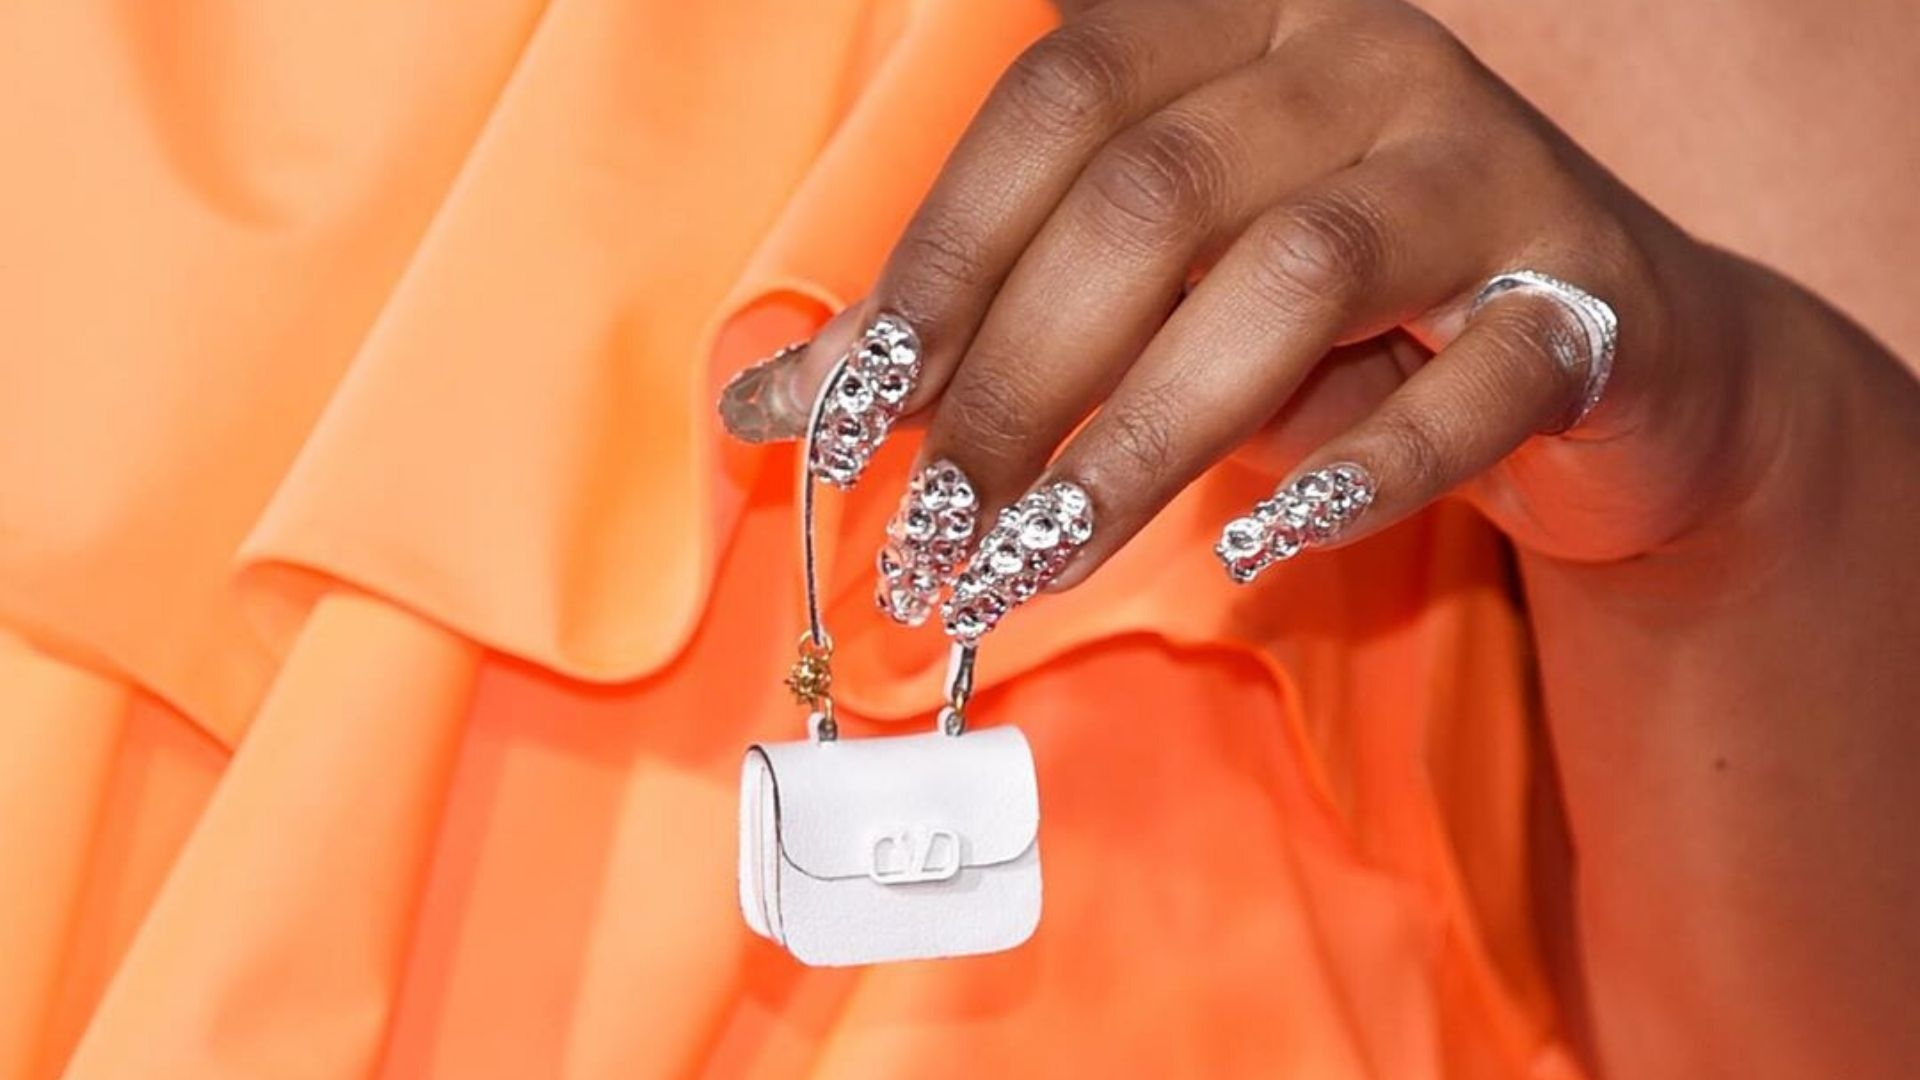 5 Tiny Things You Could Fit In Lizzo's Tiny Bag